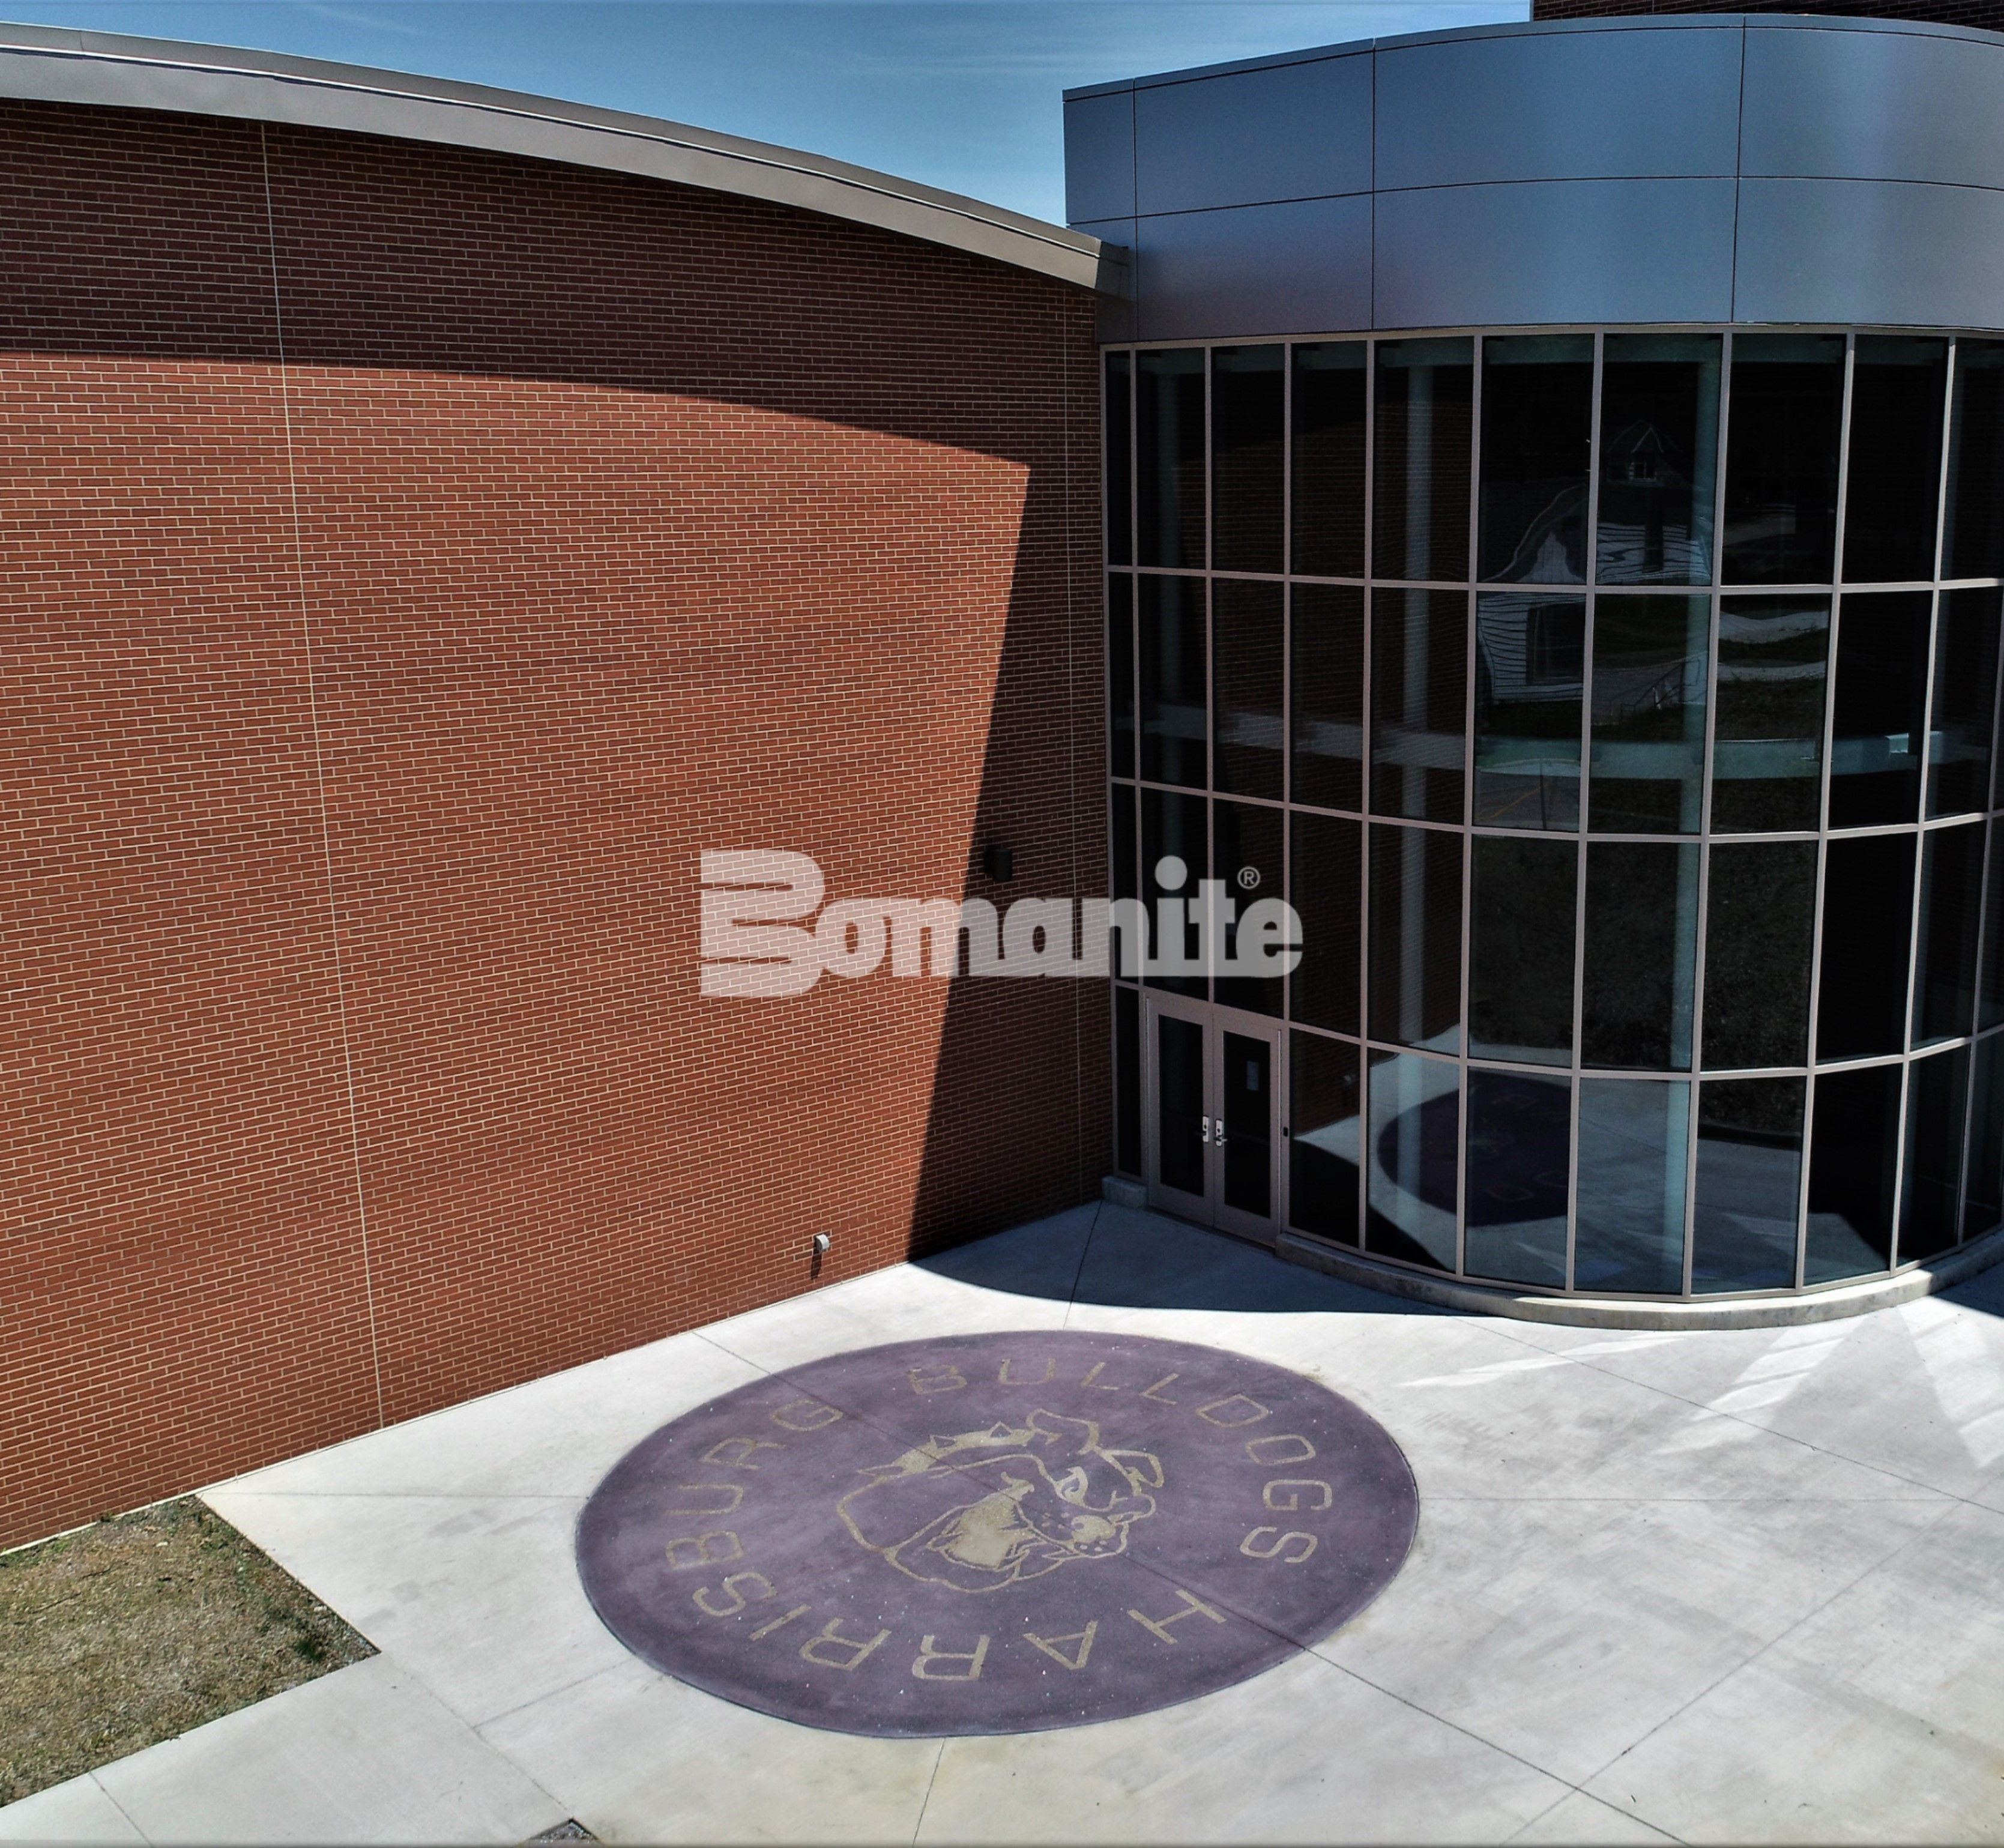 Harrisburg High School Logo using Bomanite Exposed Aggregate Decorative Concrete with Bomanite Alloy in Harrisburg, IL.